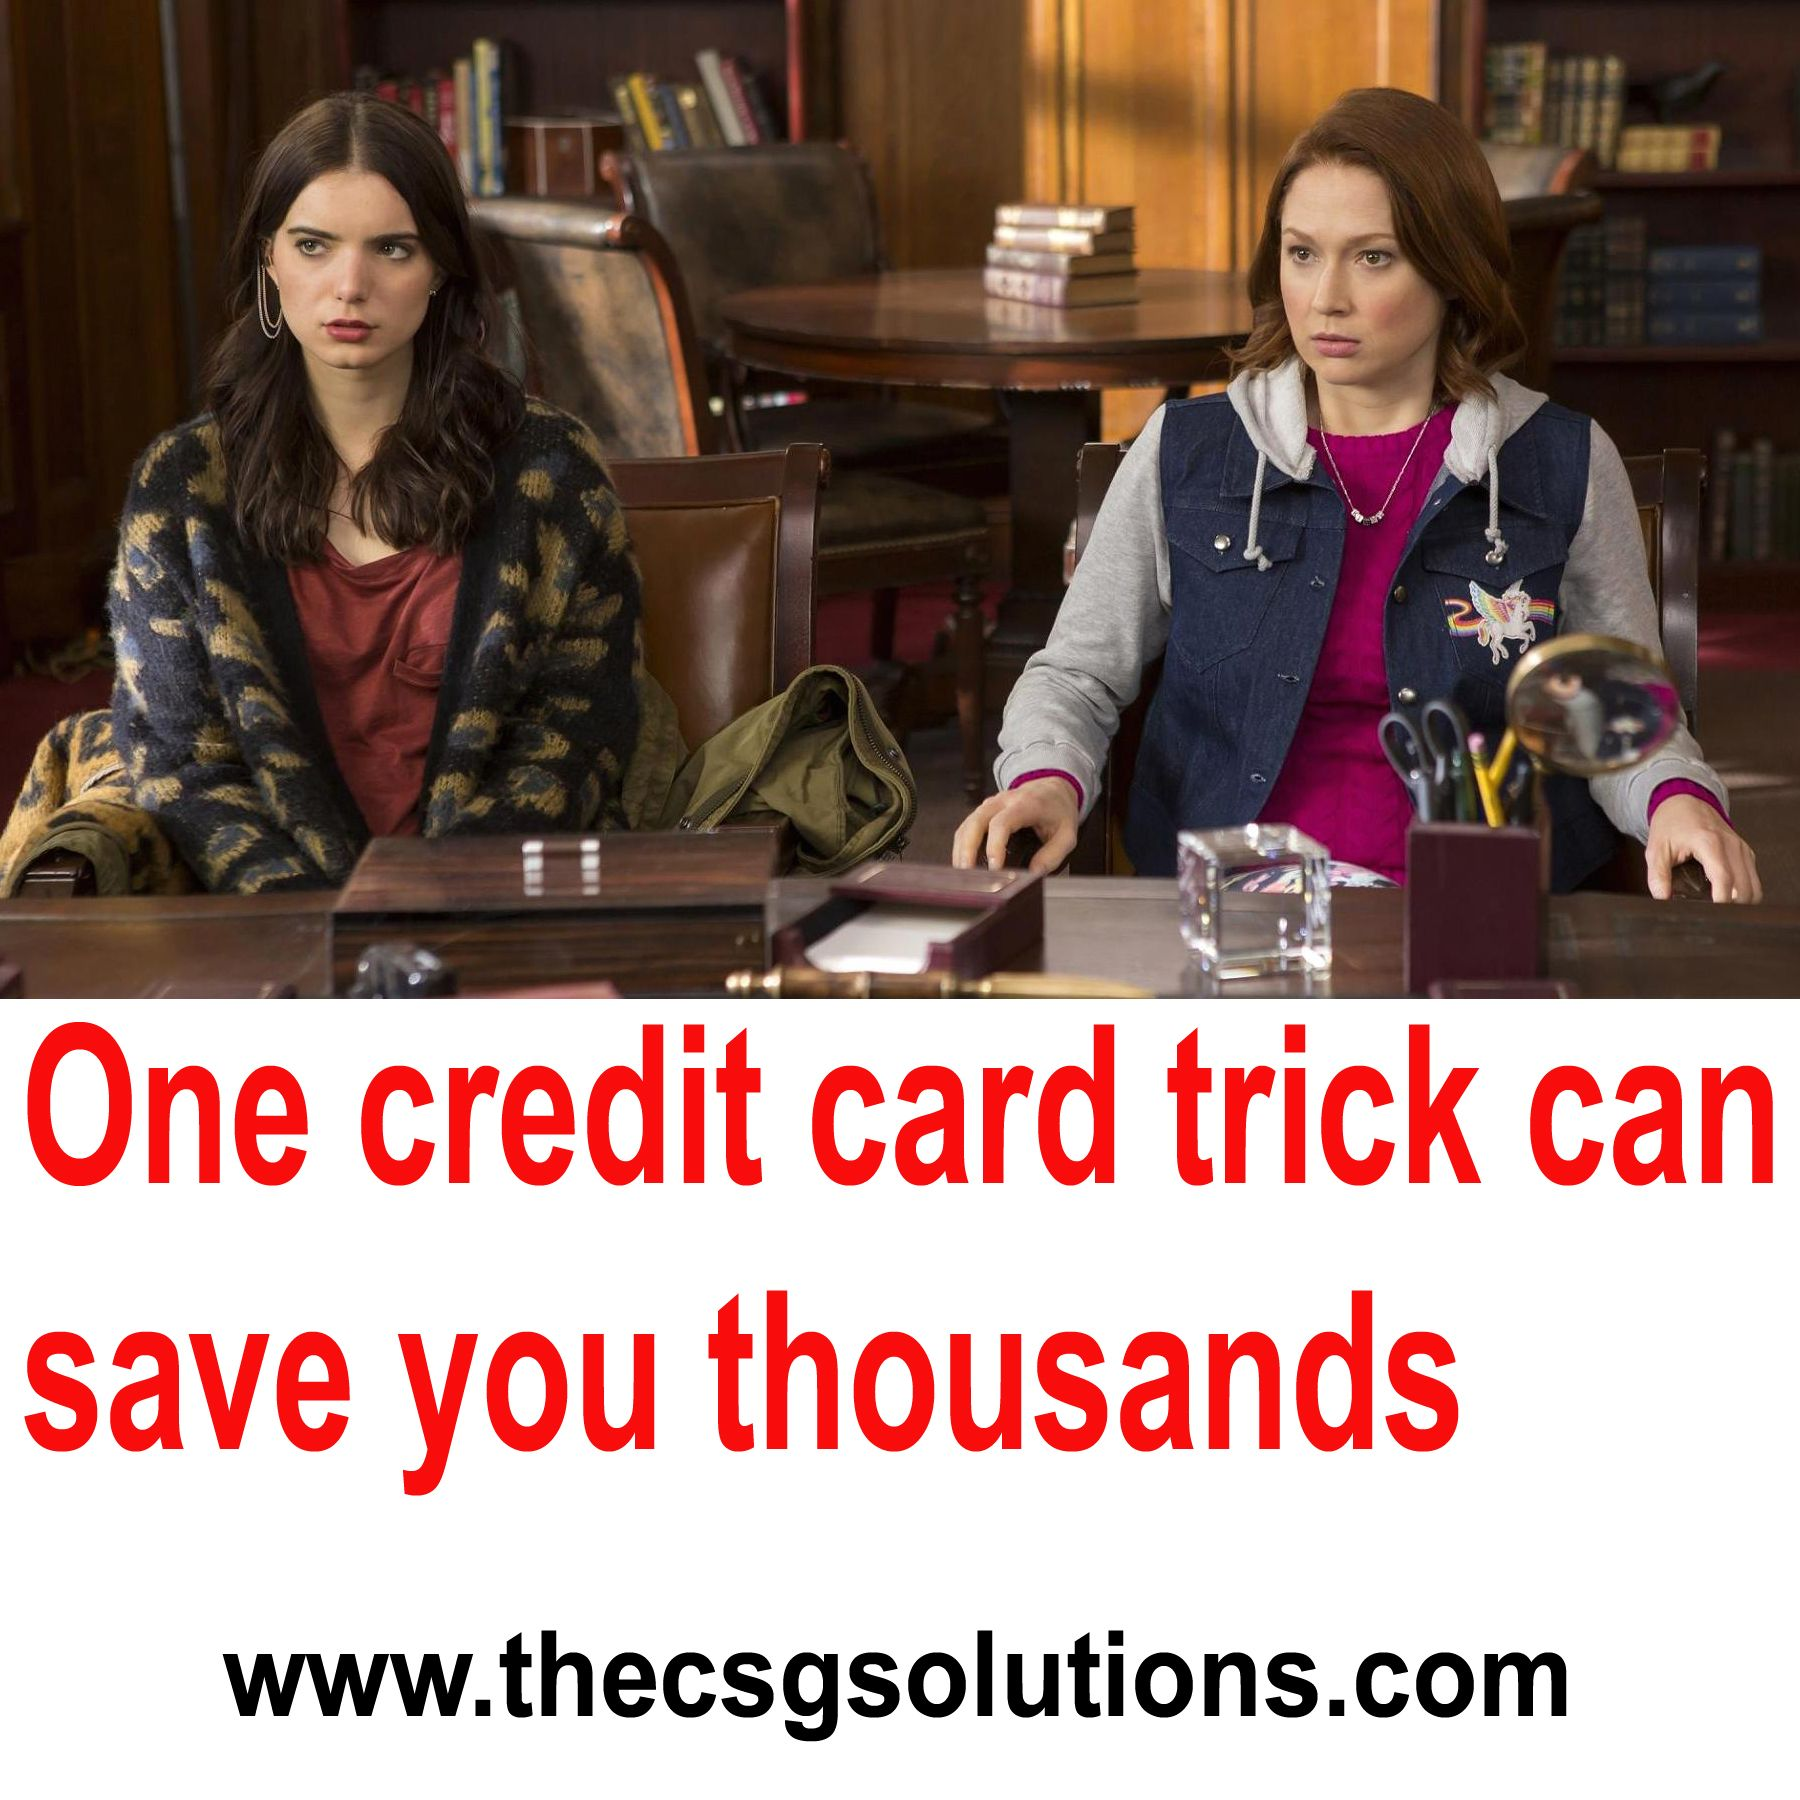 Are you having troubles with your debts one credit card